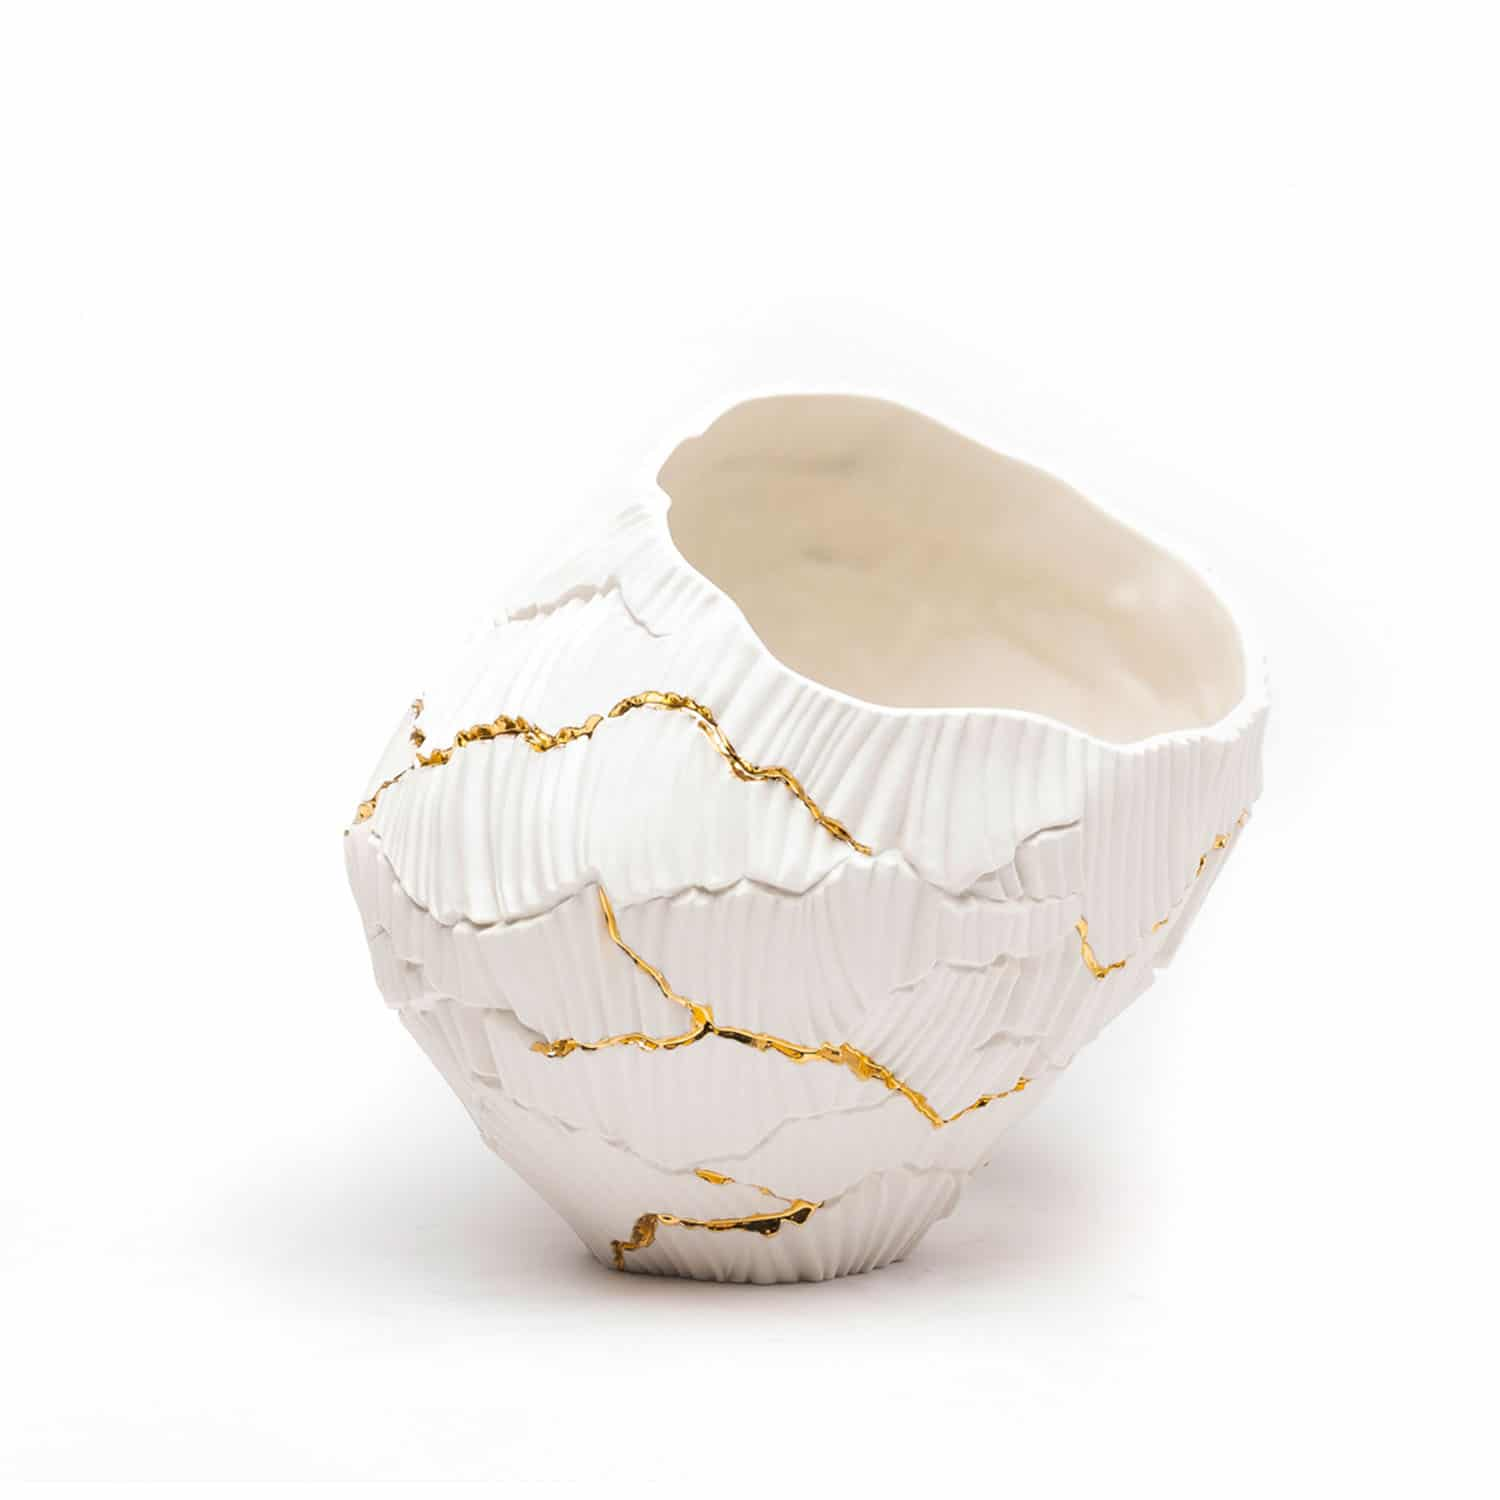 Luxury gold and porcelain deocrative bowl